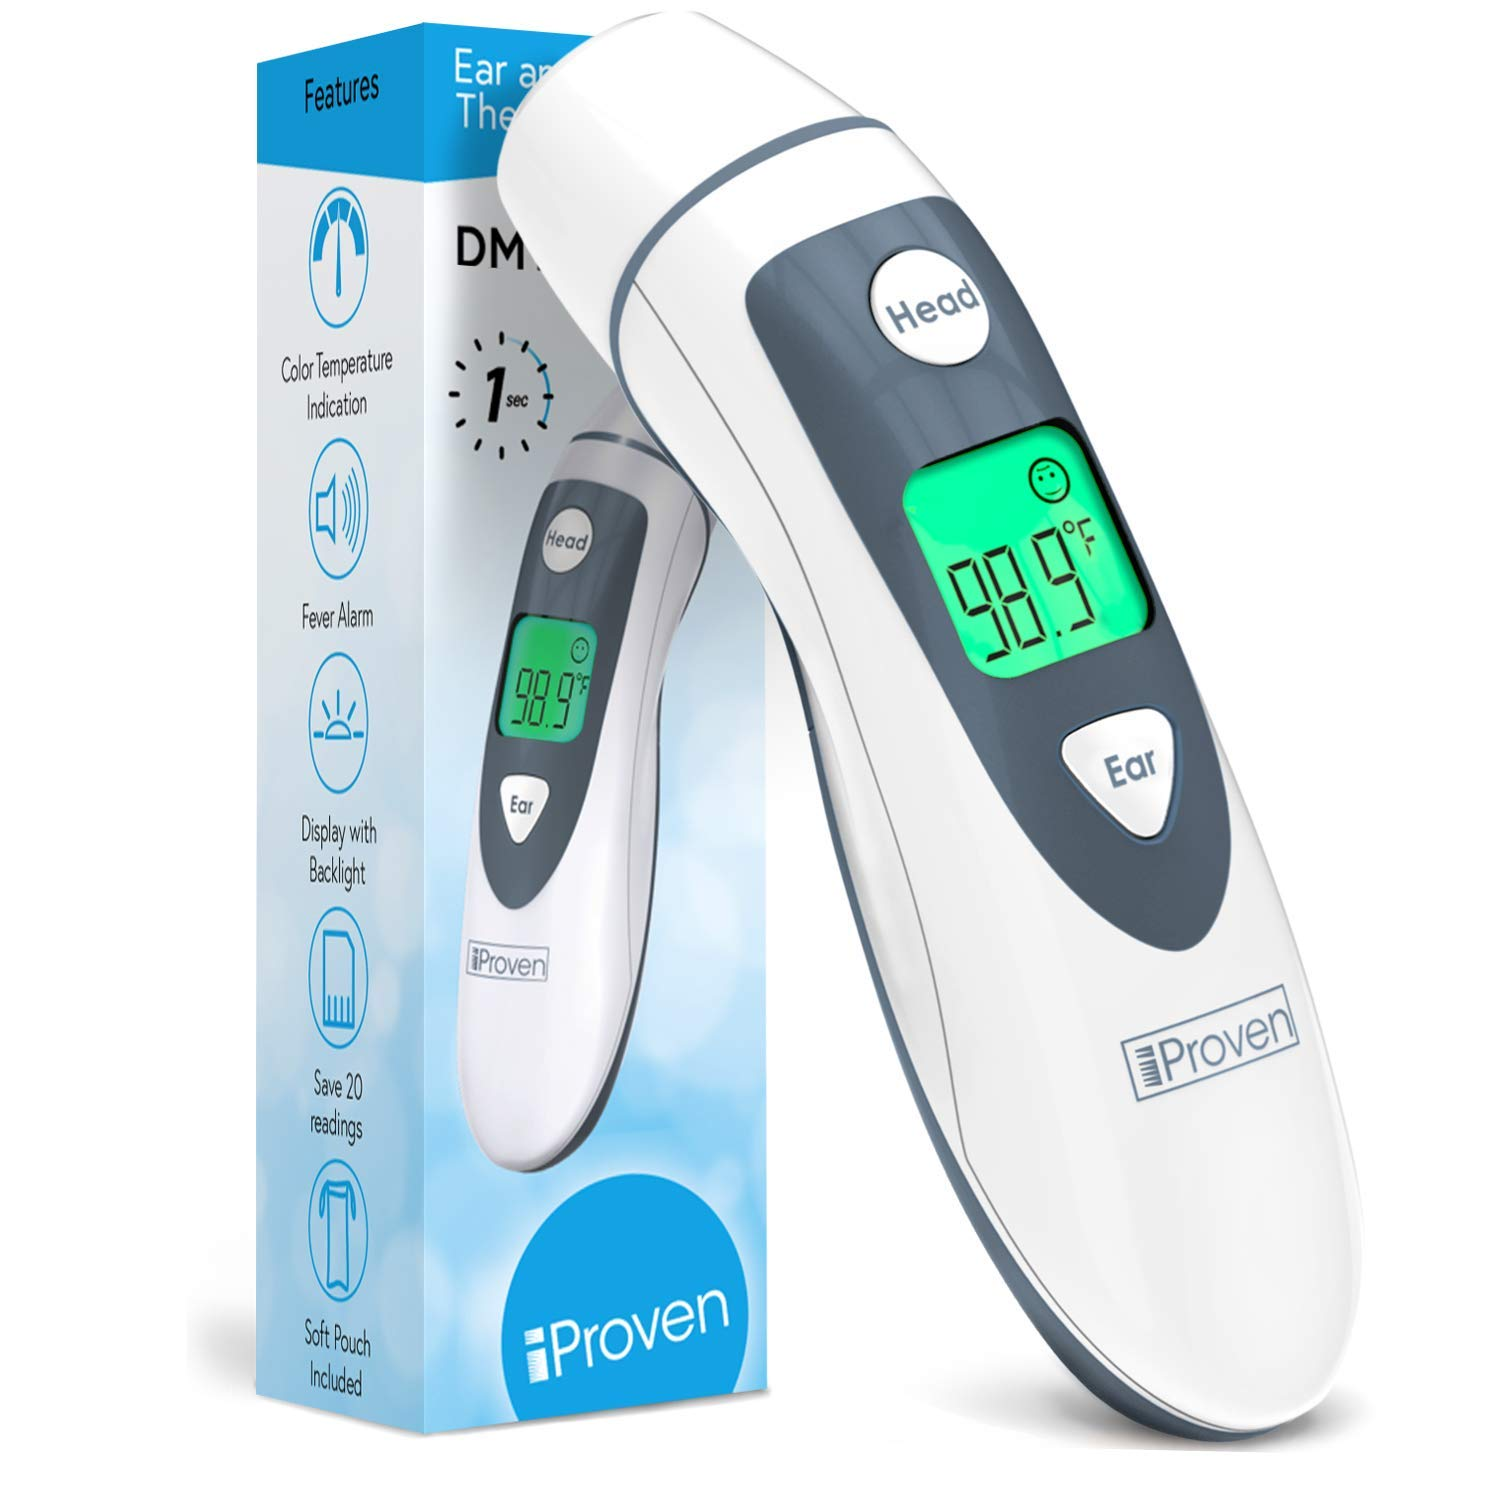 iProven DMT-489 Forehead and Ear Thermometer, Digital Infrared No Contact, for Adults, Kids, Baby, Health and Medical, FSA or HSA Eligible, Color Fever Temp Display, Touchless Temporal Head Readings